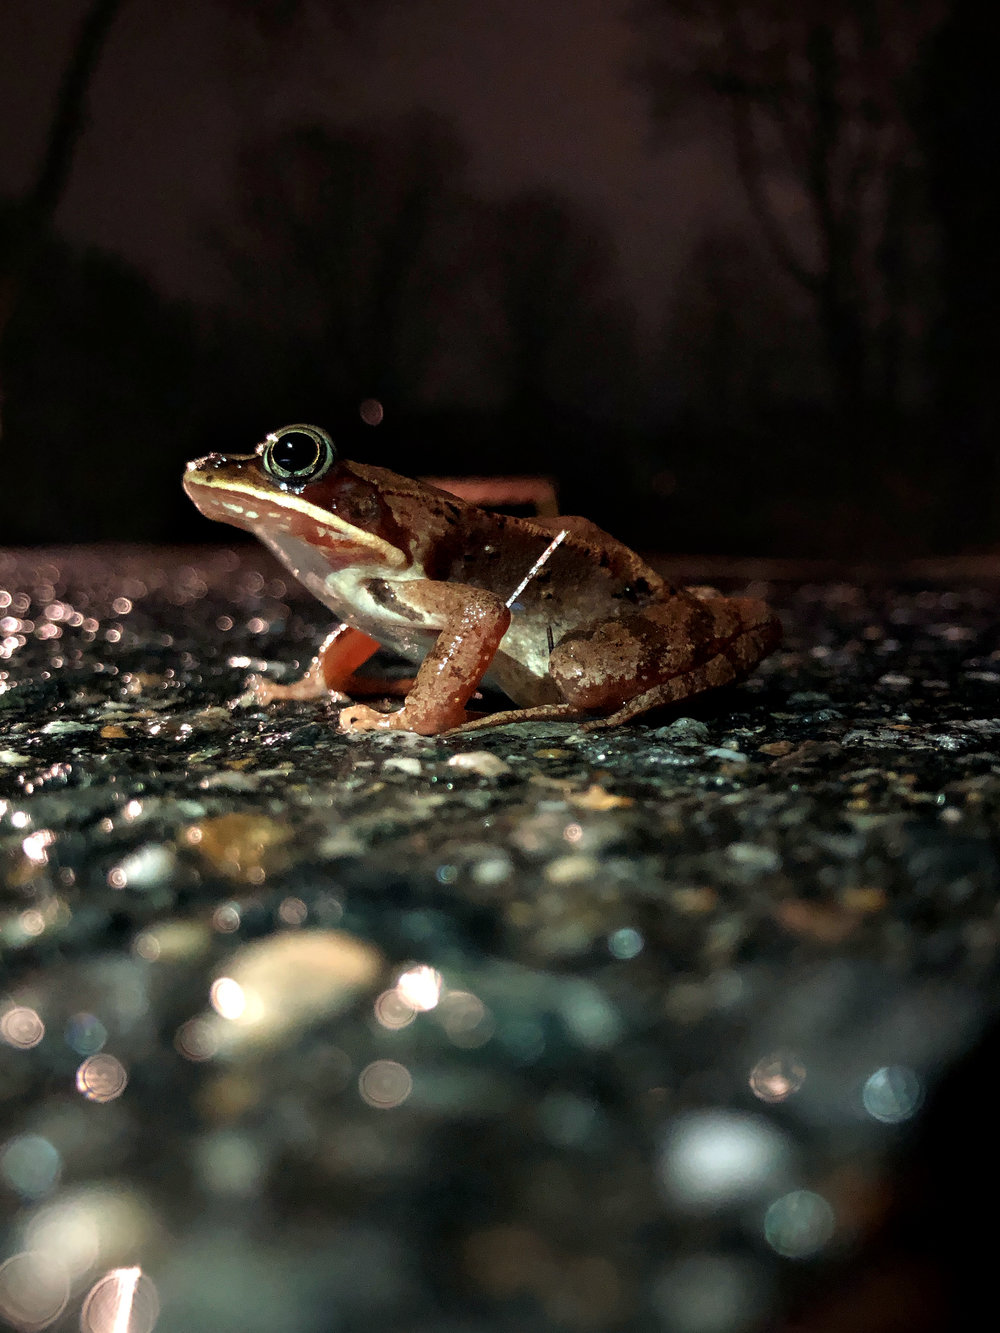 A volunteer's flashlight lights up a migratory wood frog. (Anna Miller/Animalia Podcast)